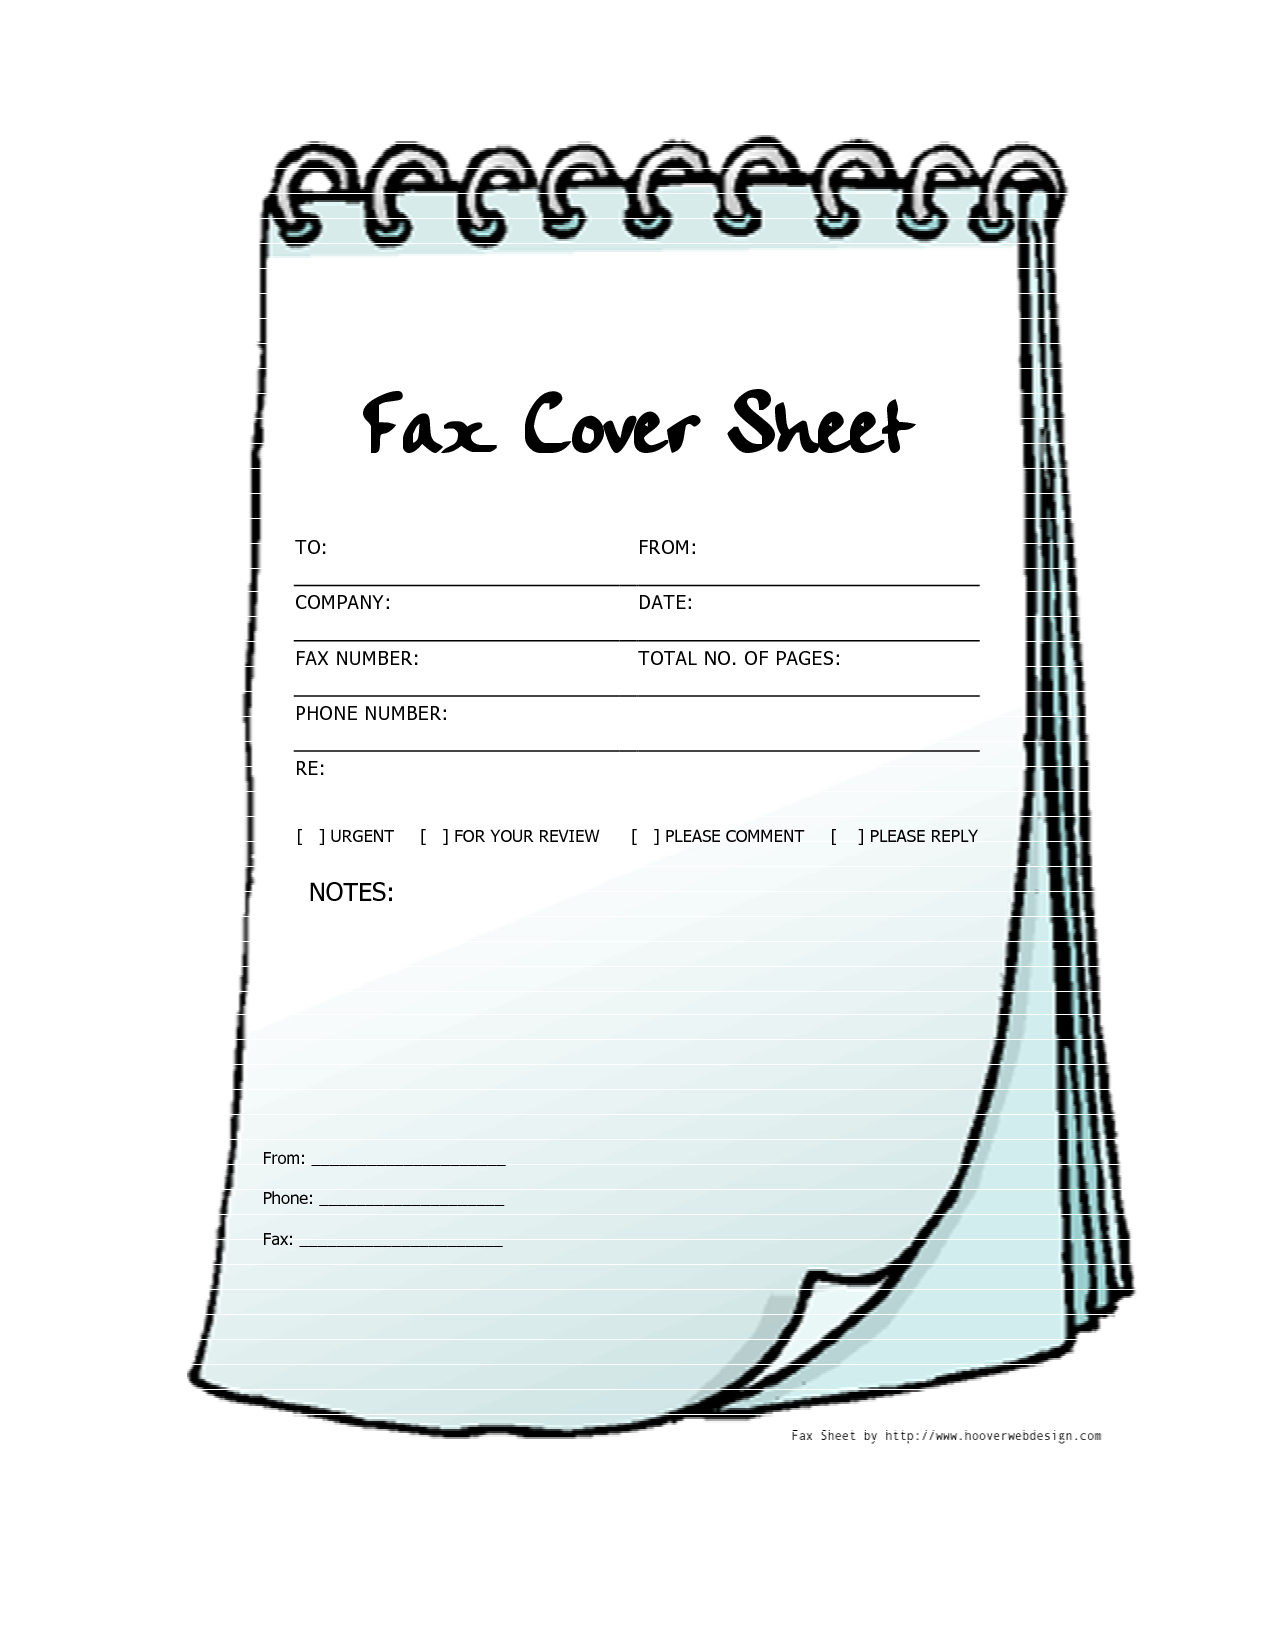 Free Printable Fax Cover Sheets | Free Printable Fax Cover Sheet - Free Printable Cover Letter For Fax